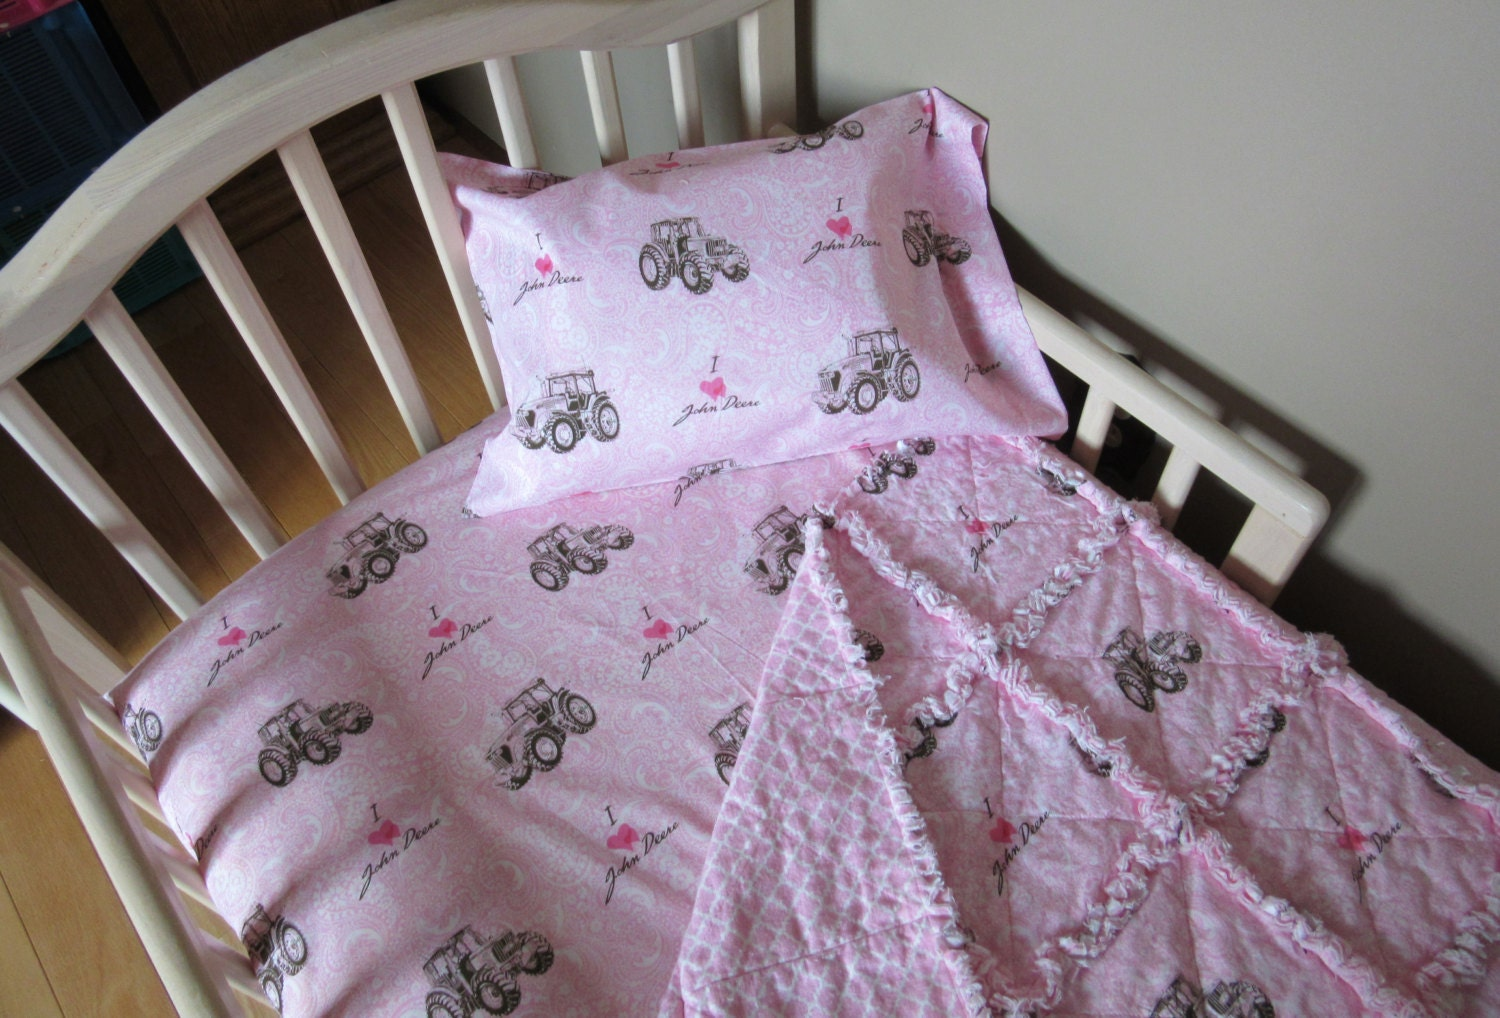 I Love Heart JOHN DEERE Pink Paisley Fabric Crib Bedding